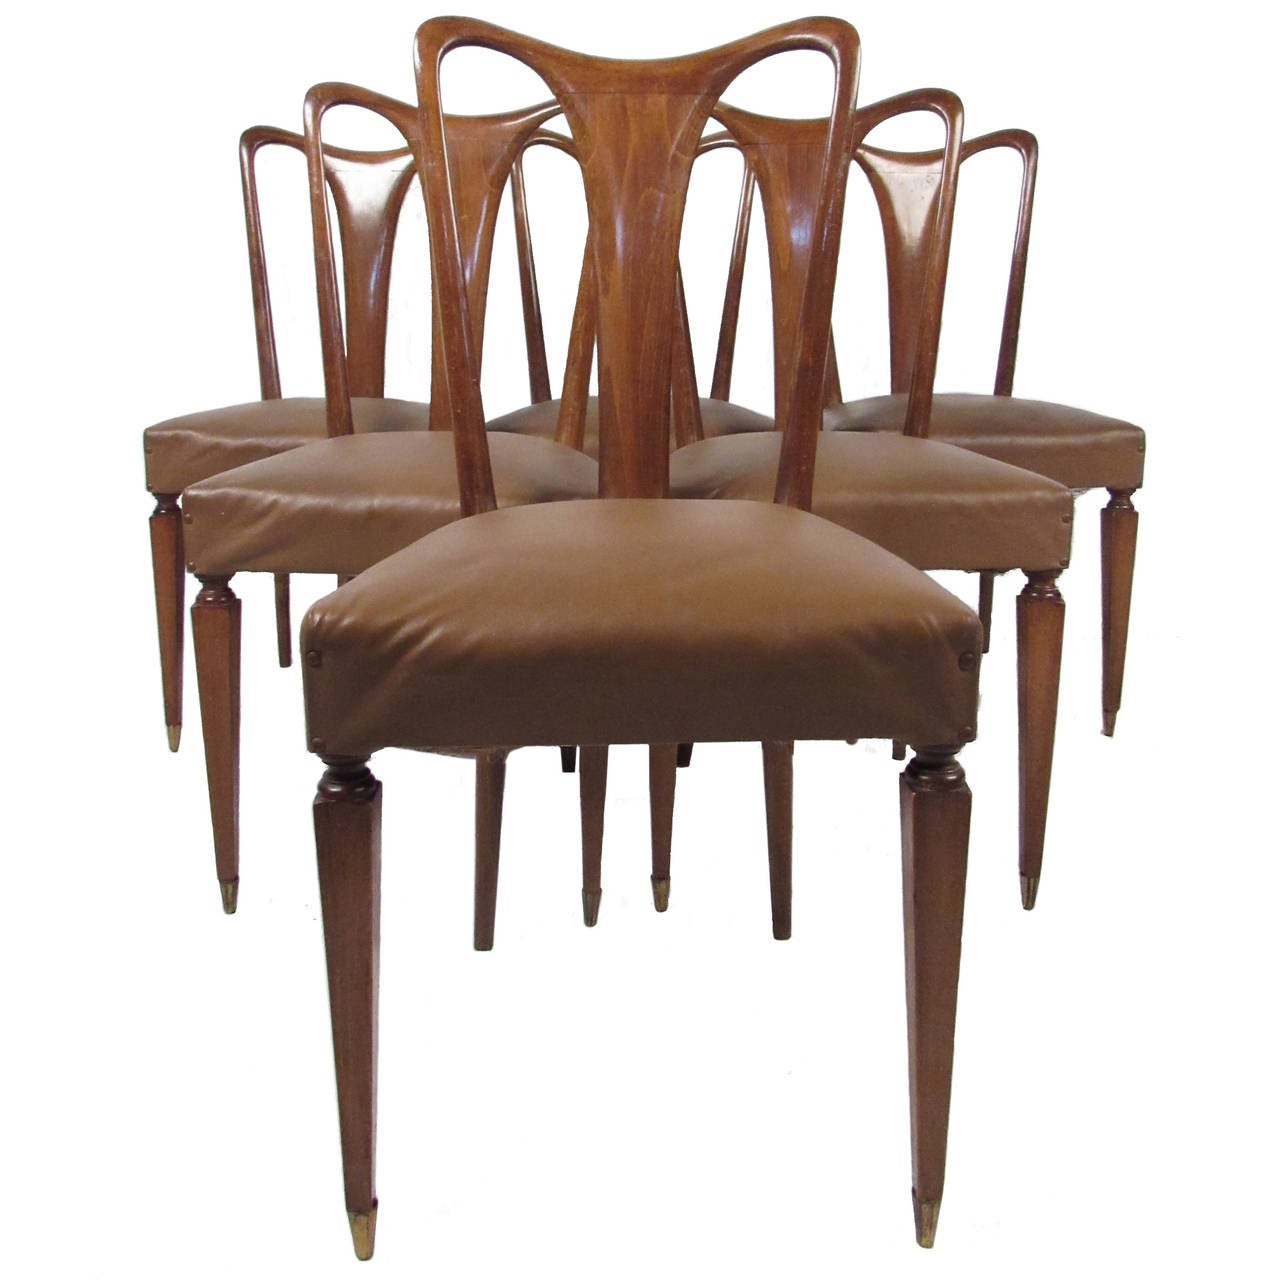 Italian Dining Chairs Vintage Italian Dining Chairs At 1stdibs